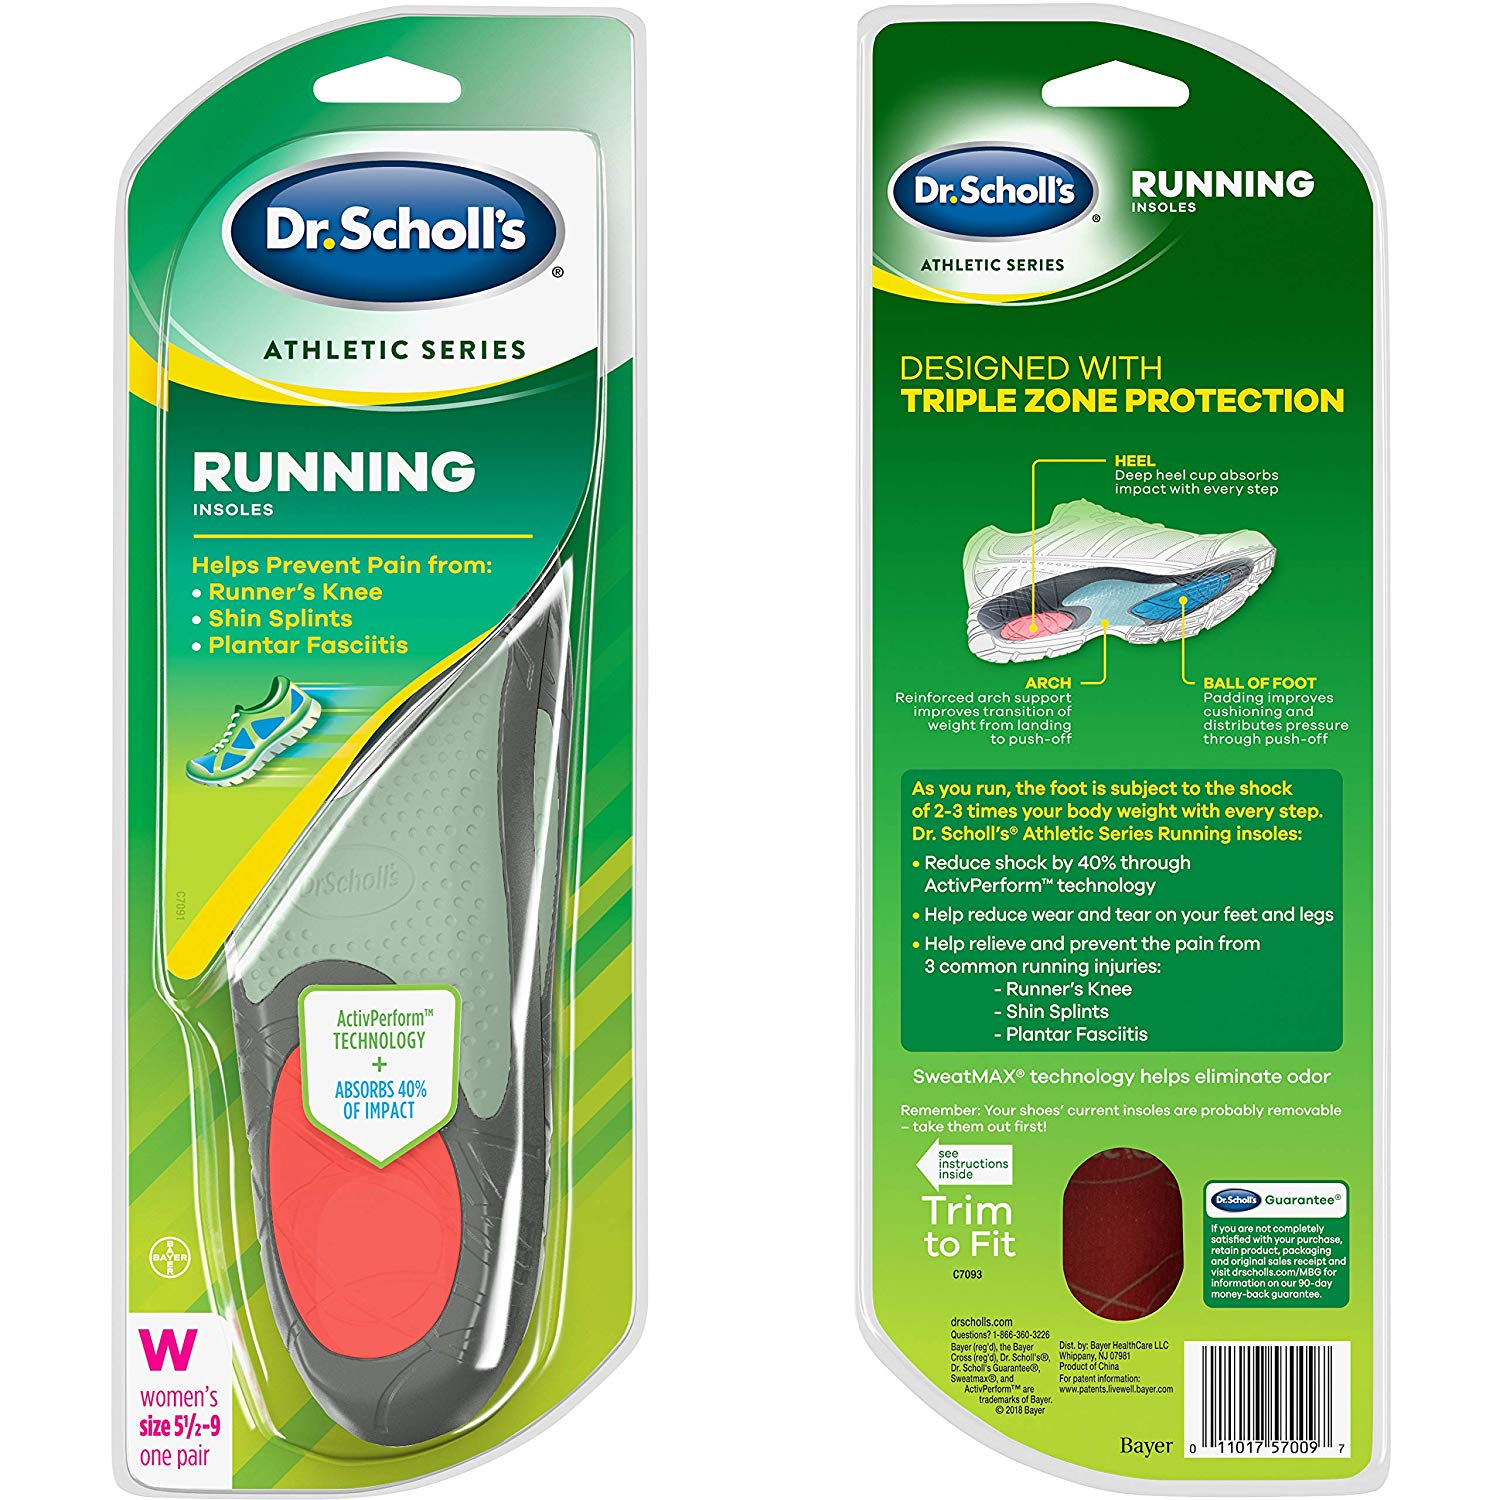 Dr. Scholl's RUNNING Insoles (Women's 5.5-9) Absorb Shock package only